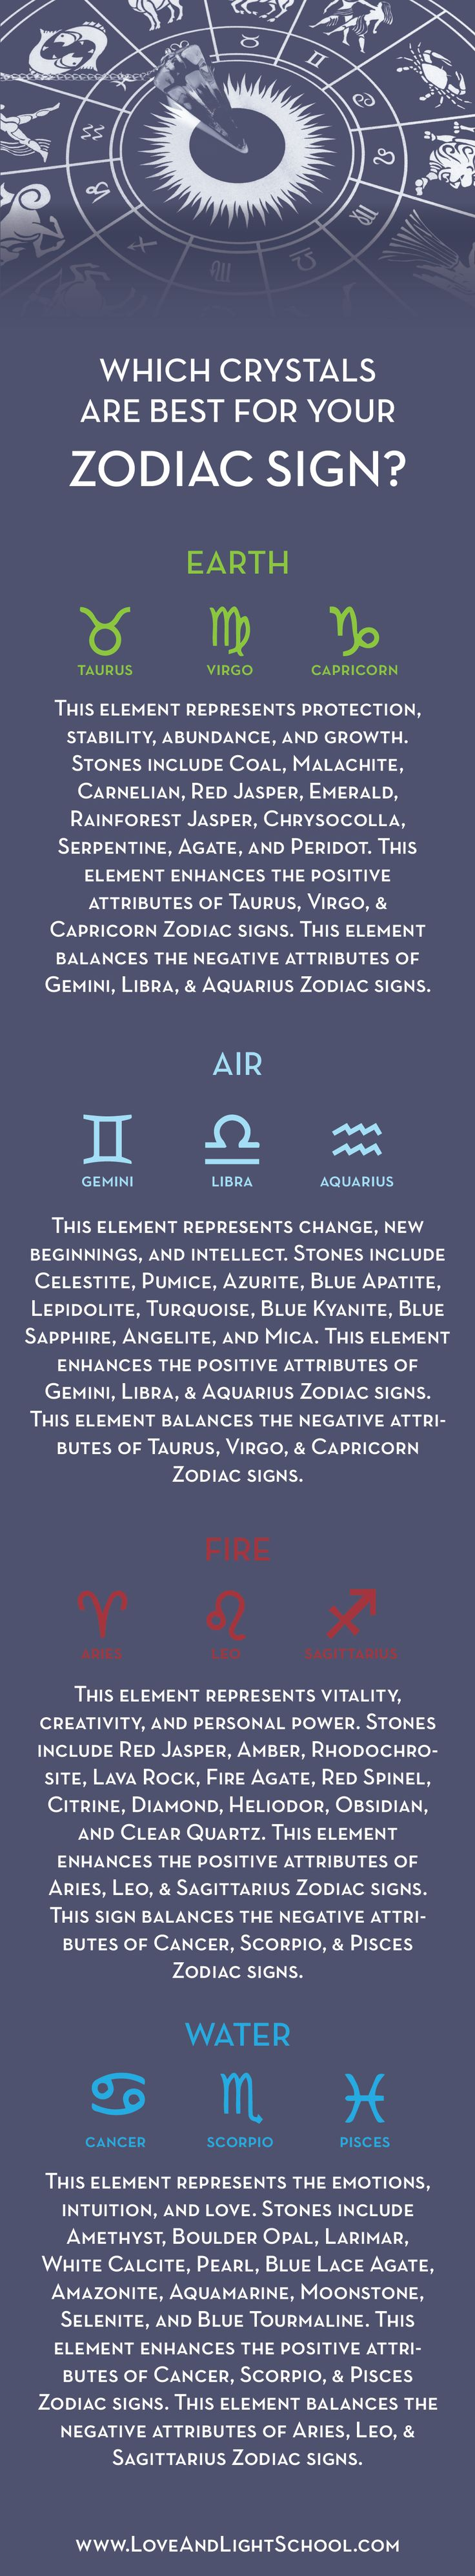 Do you know which crystals will enhance and balance your zodiac sign? Our signs are associated with elements, which are complemented by certain crystals. https://loveandlightschool.com/crystals-best-zodiac-sign/